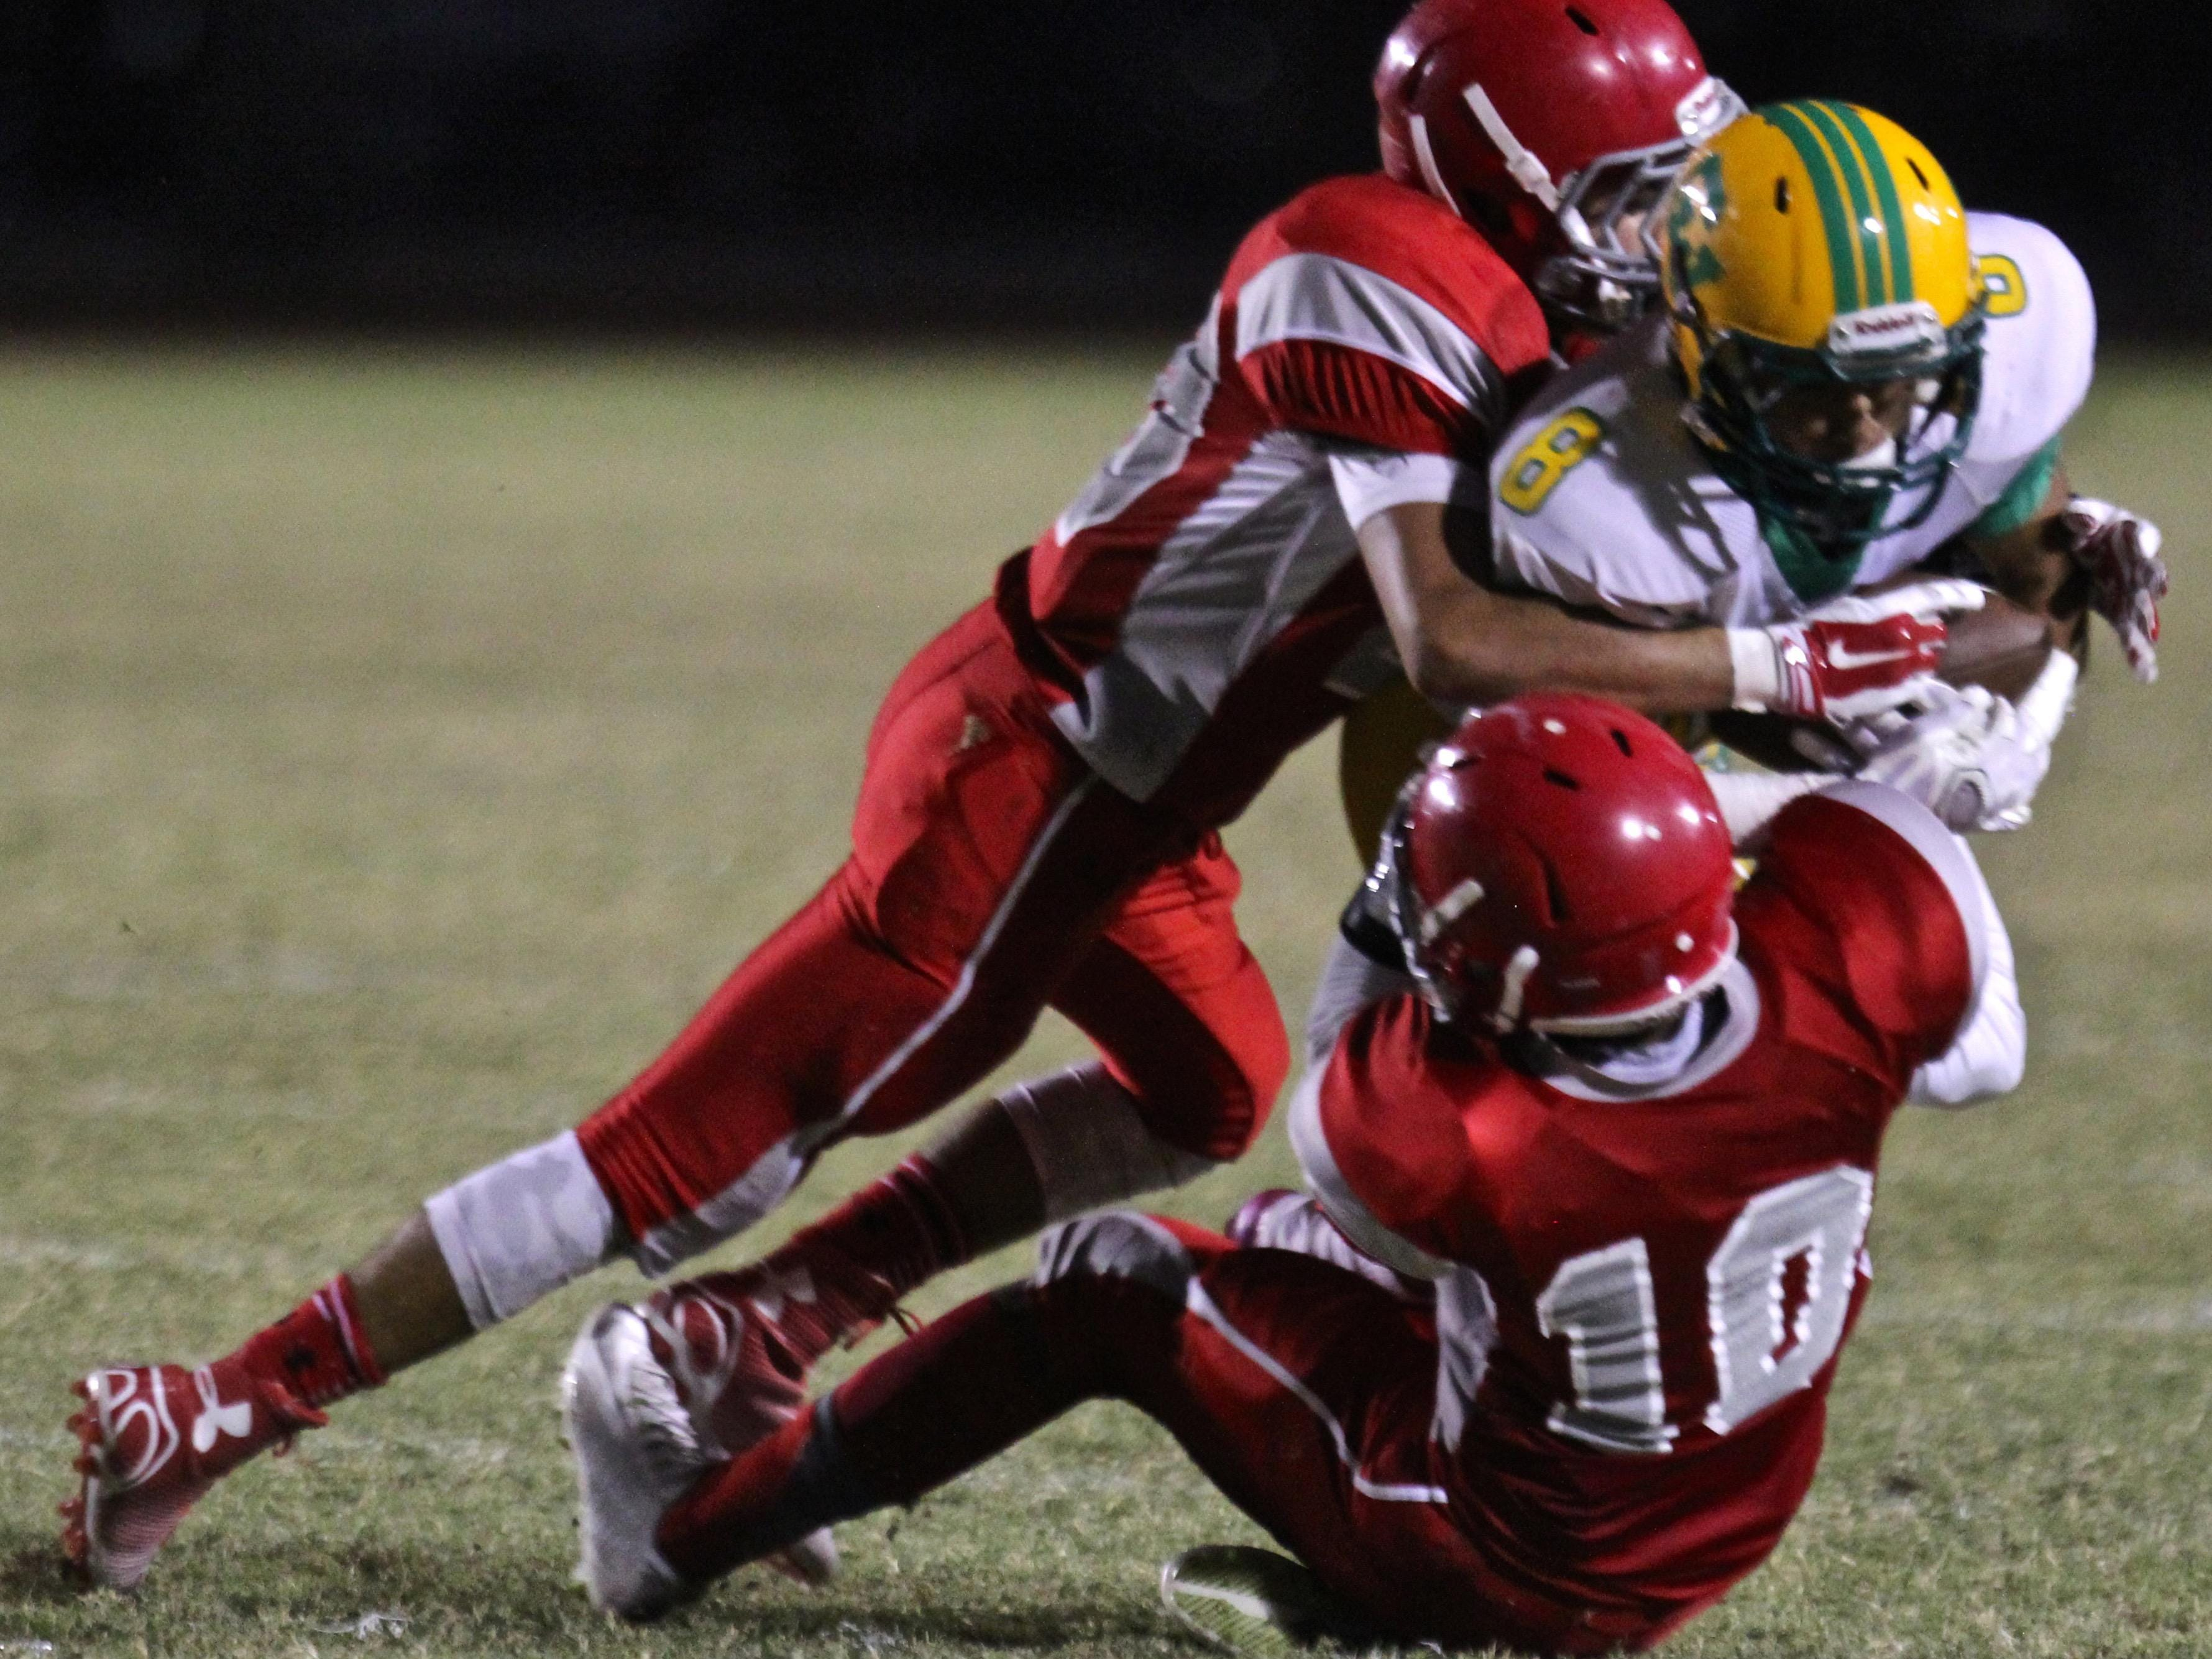 Coachella Valley's Willy Ortiz (8) is tackled by two Rams defenders during the annual Date Bowl matchup in Thermal on Friday.